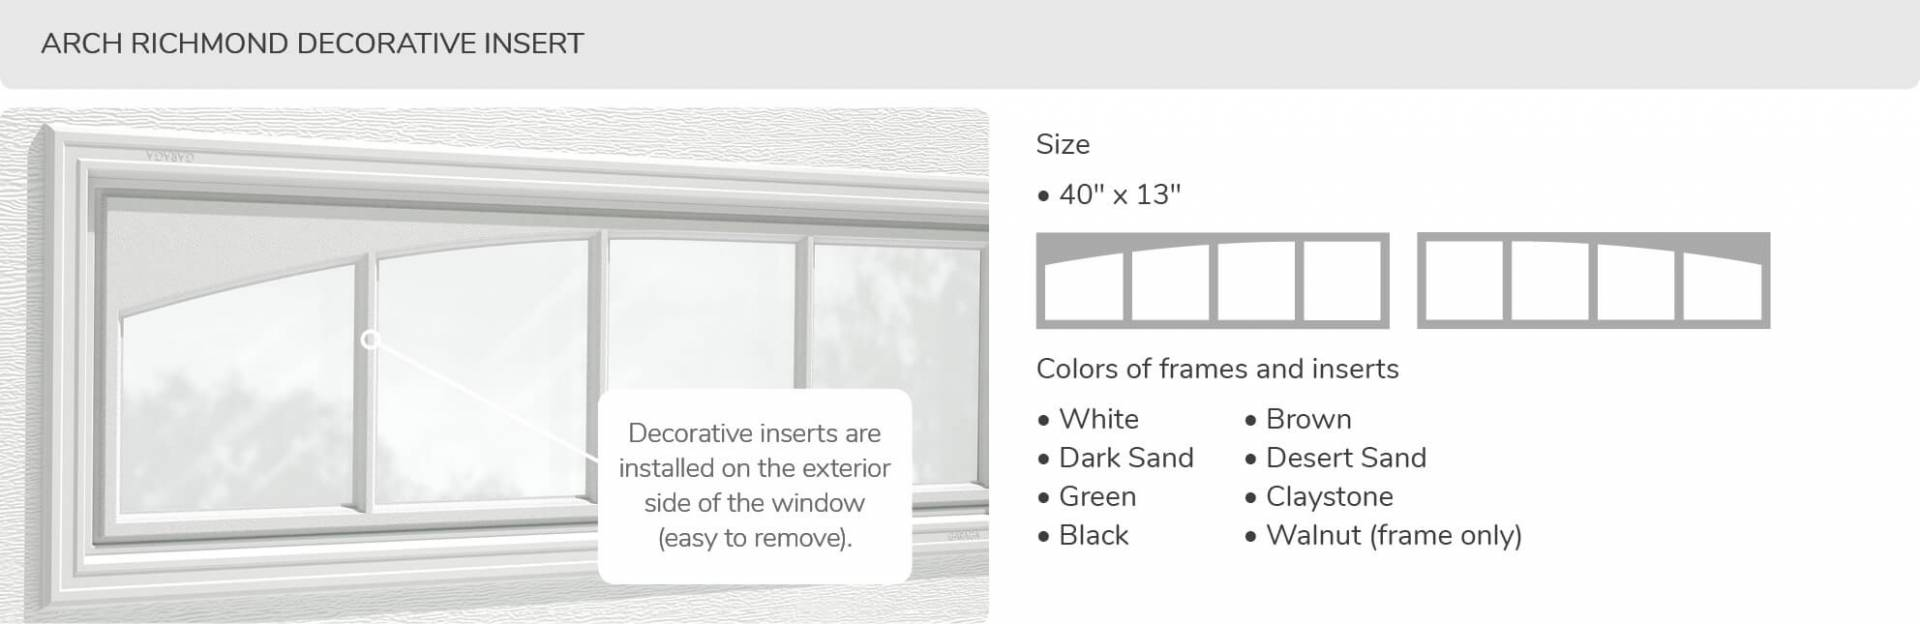 Arch Richmond Decorative Insert, 40' x 13', available for door R-16